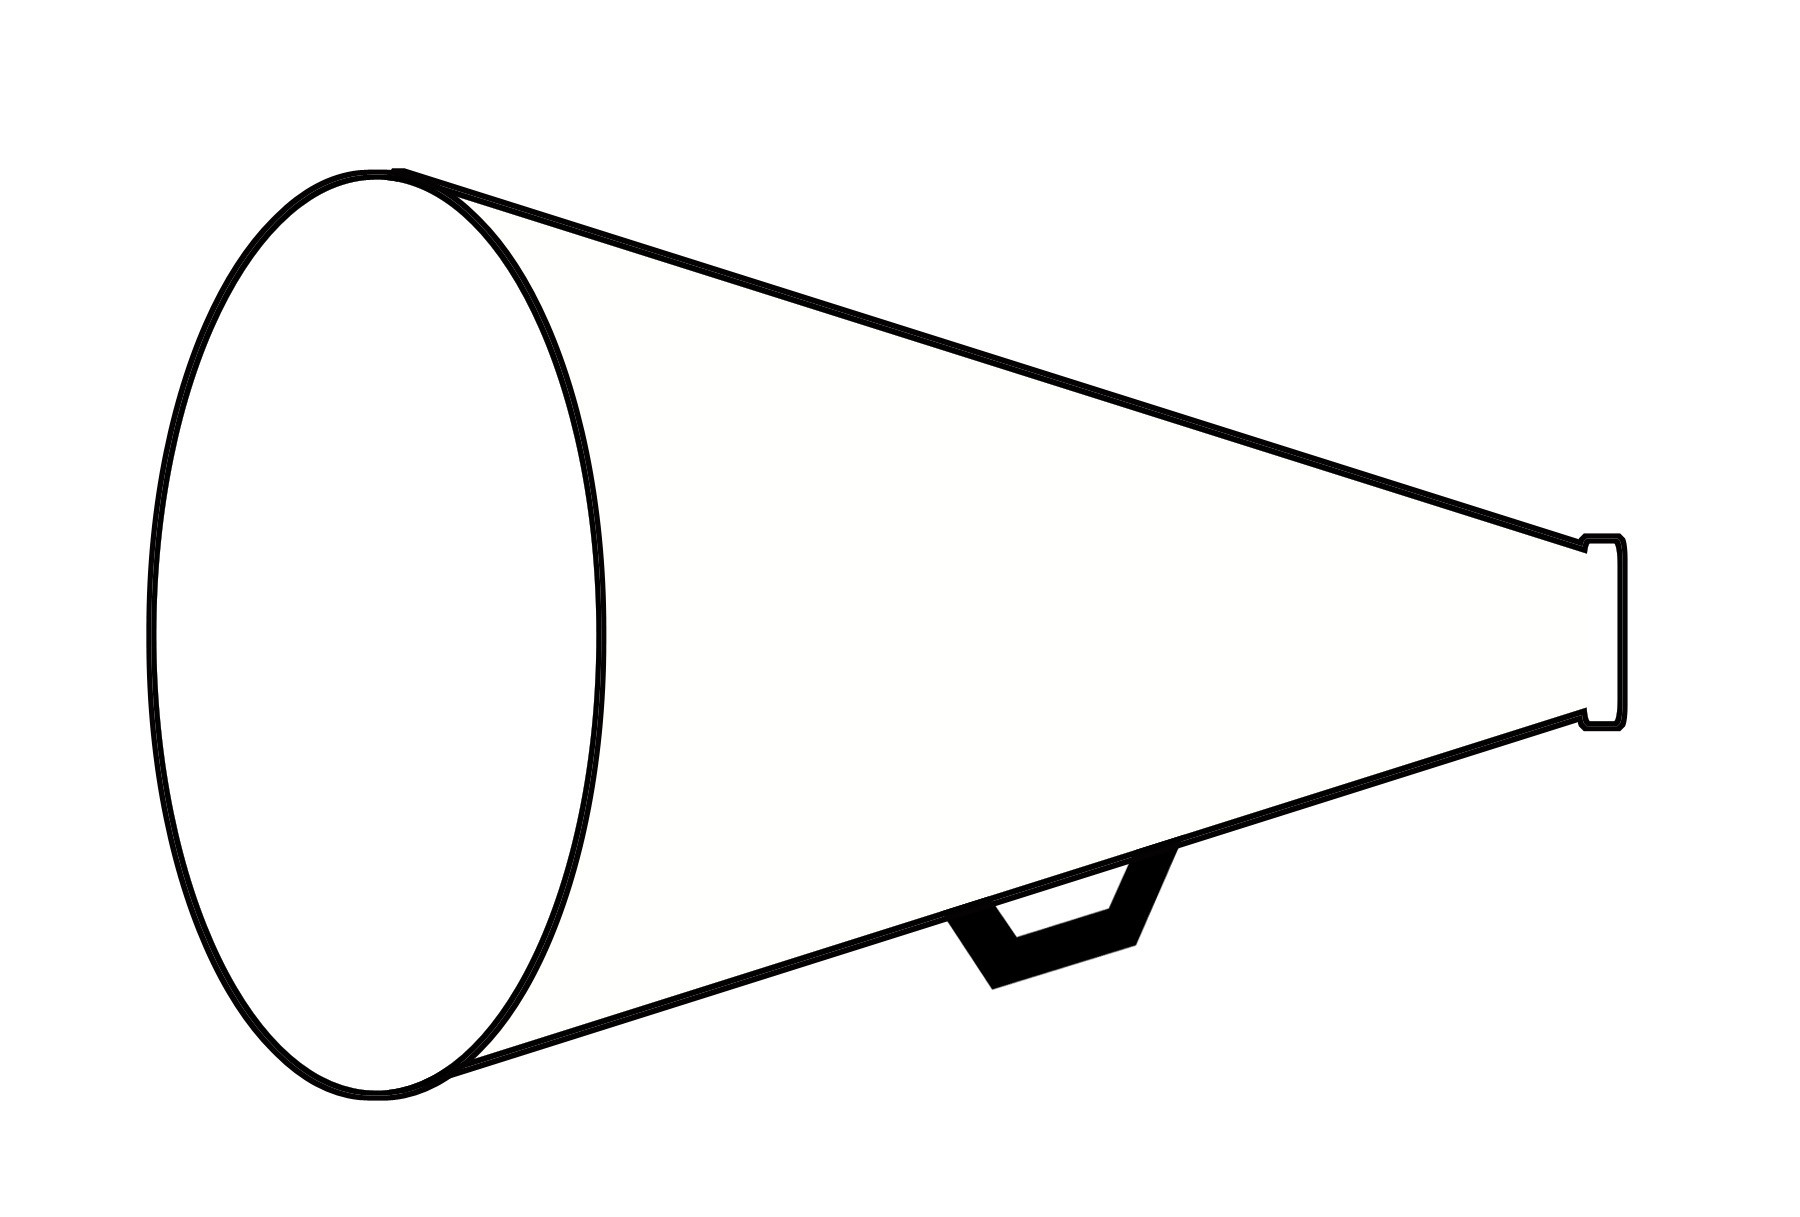 Free Coloring Pages Of Megaphone Template Lovely Megaphone Template - Free Printable Megaphone Template